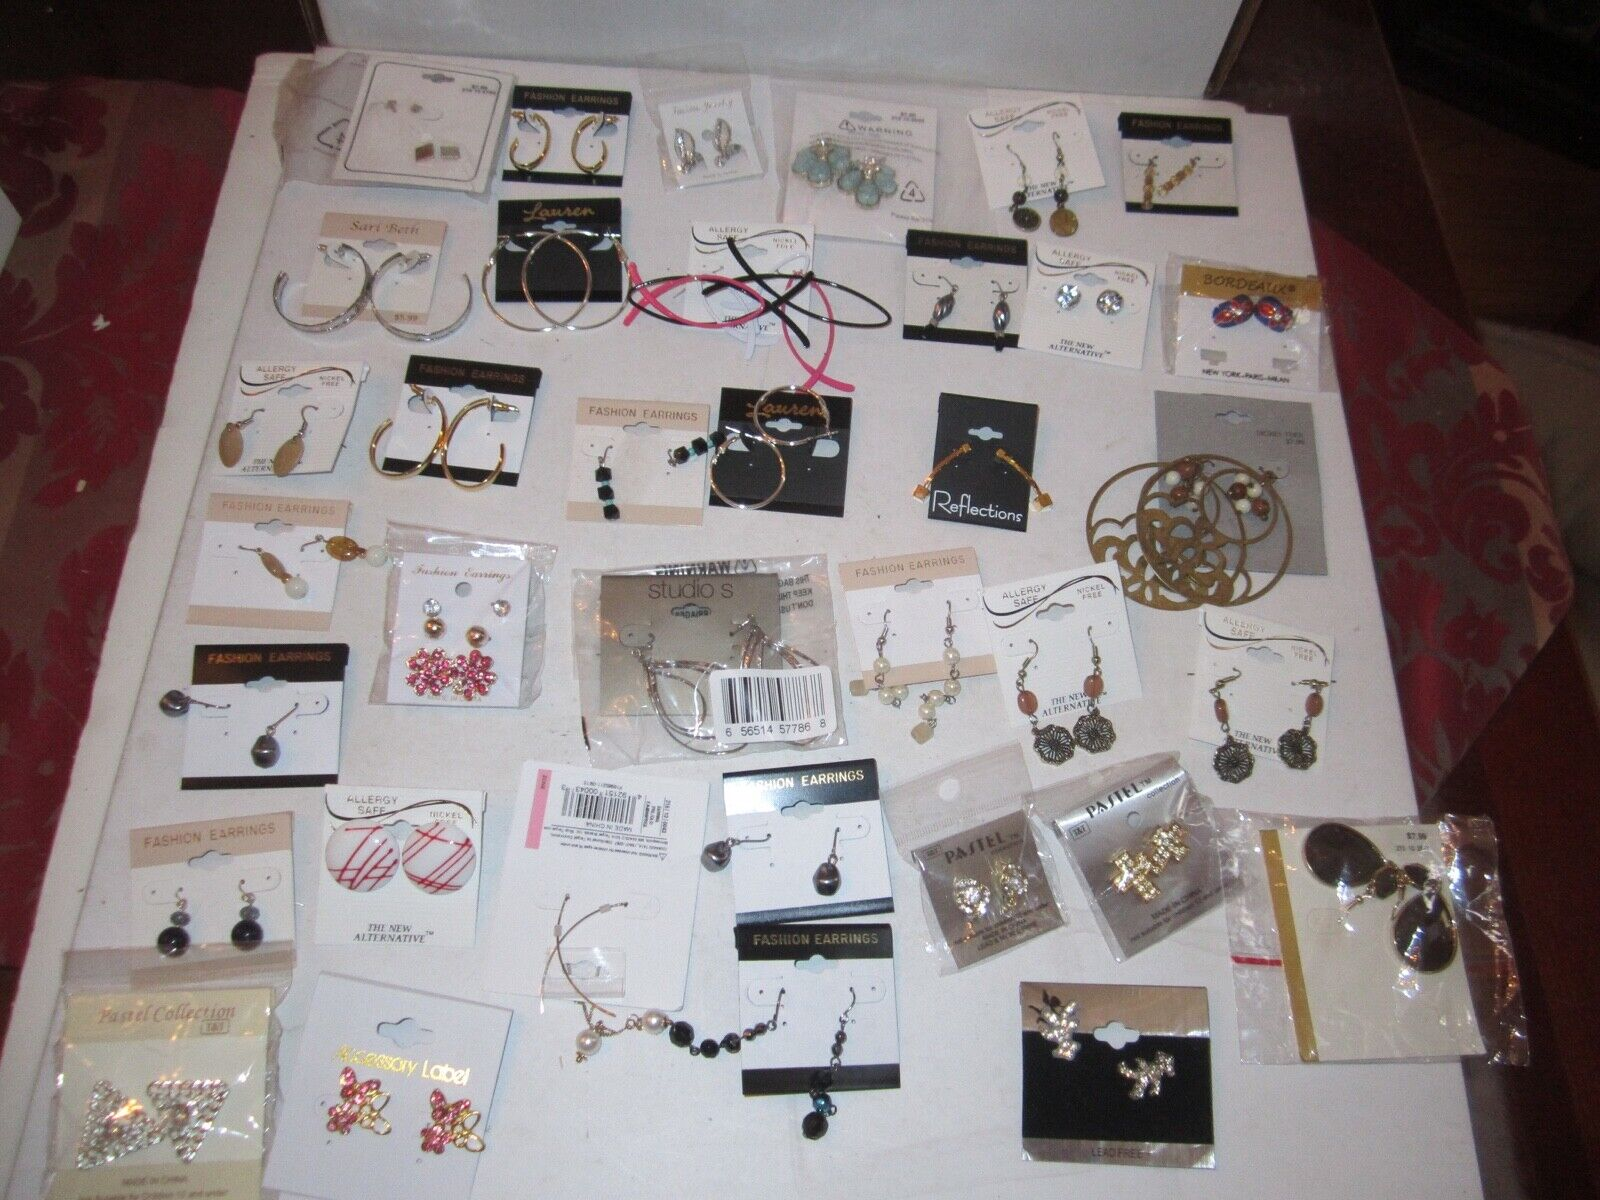 75 PAIRS OF EARRINGS - FASHION JEWELRY - LAUREN, BALLET & MORE - LOT3 - TUB RR